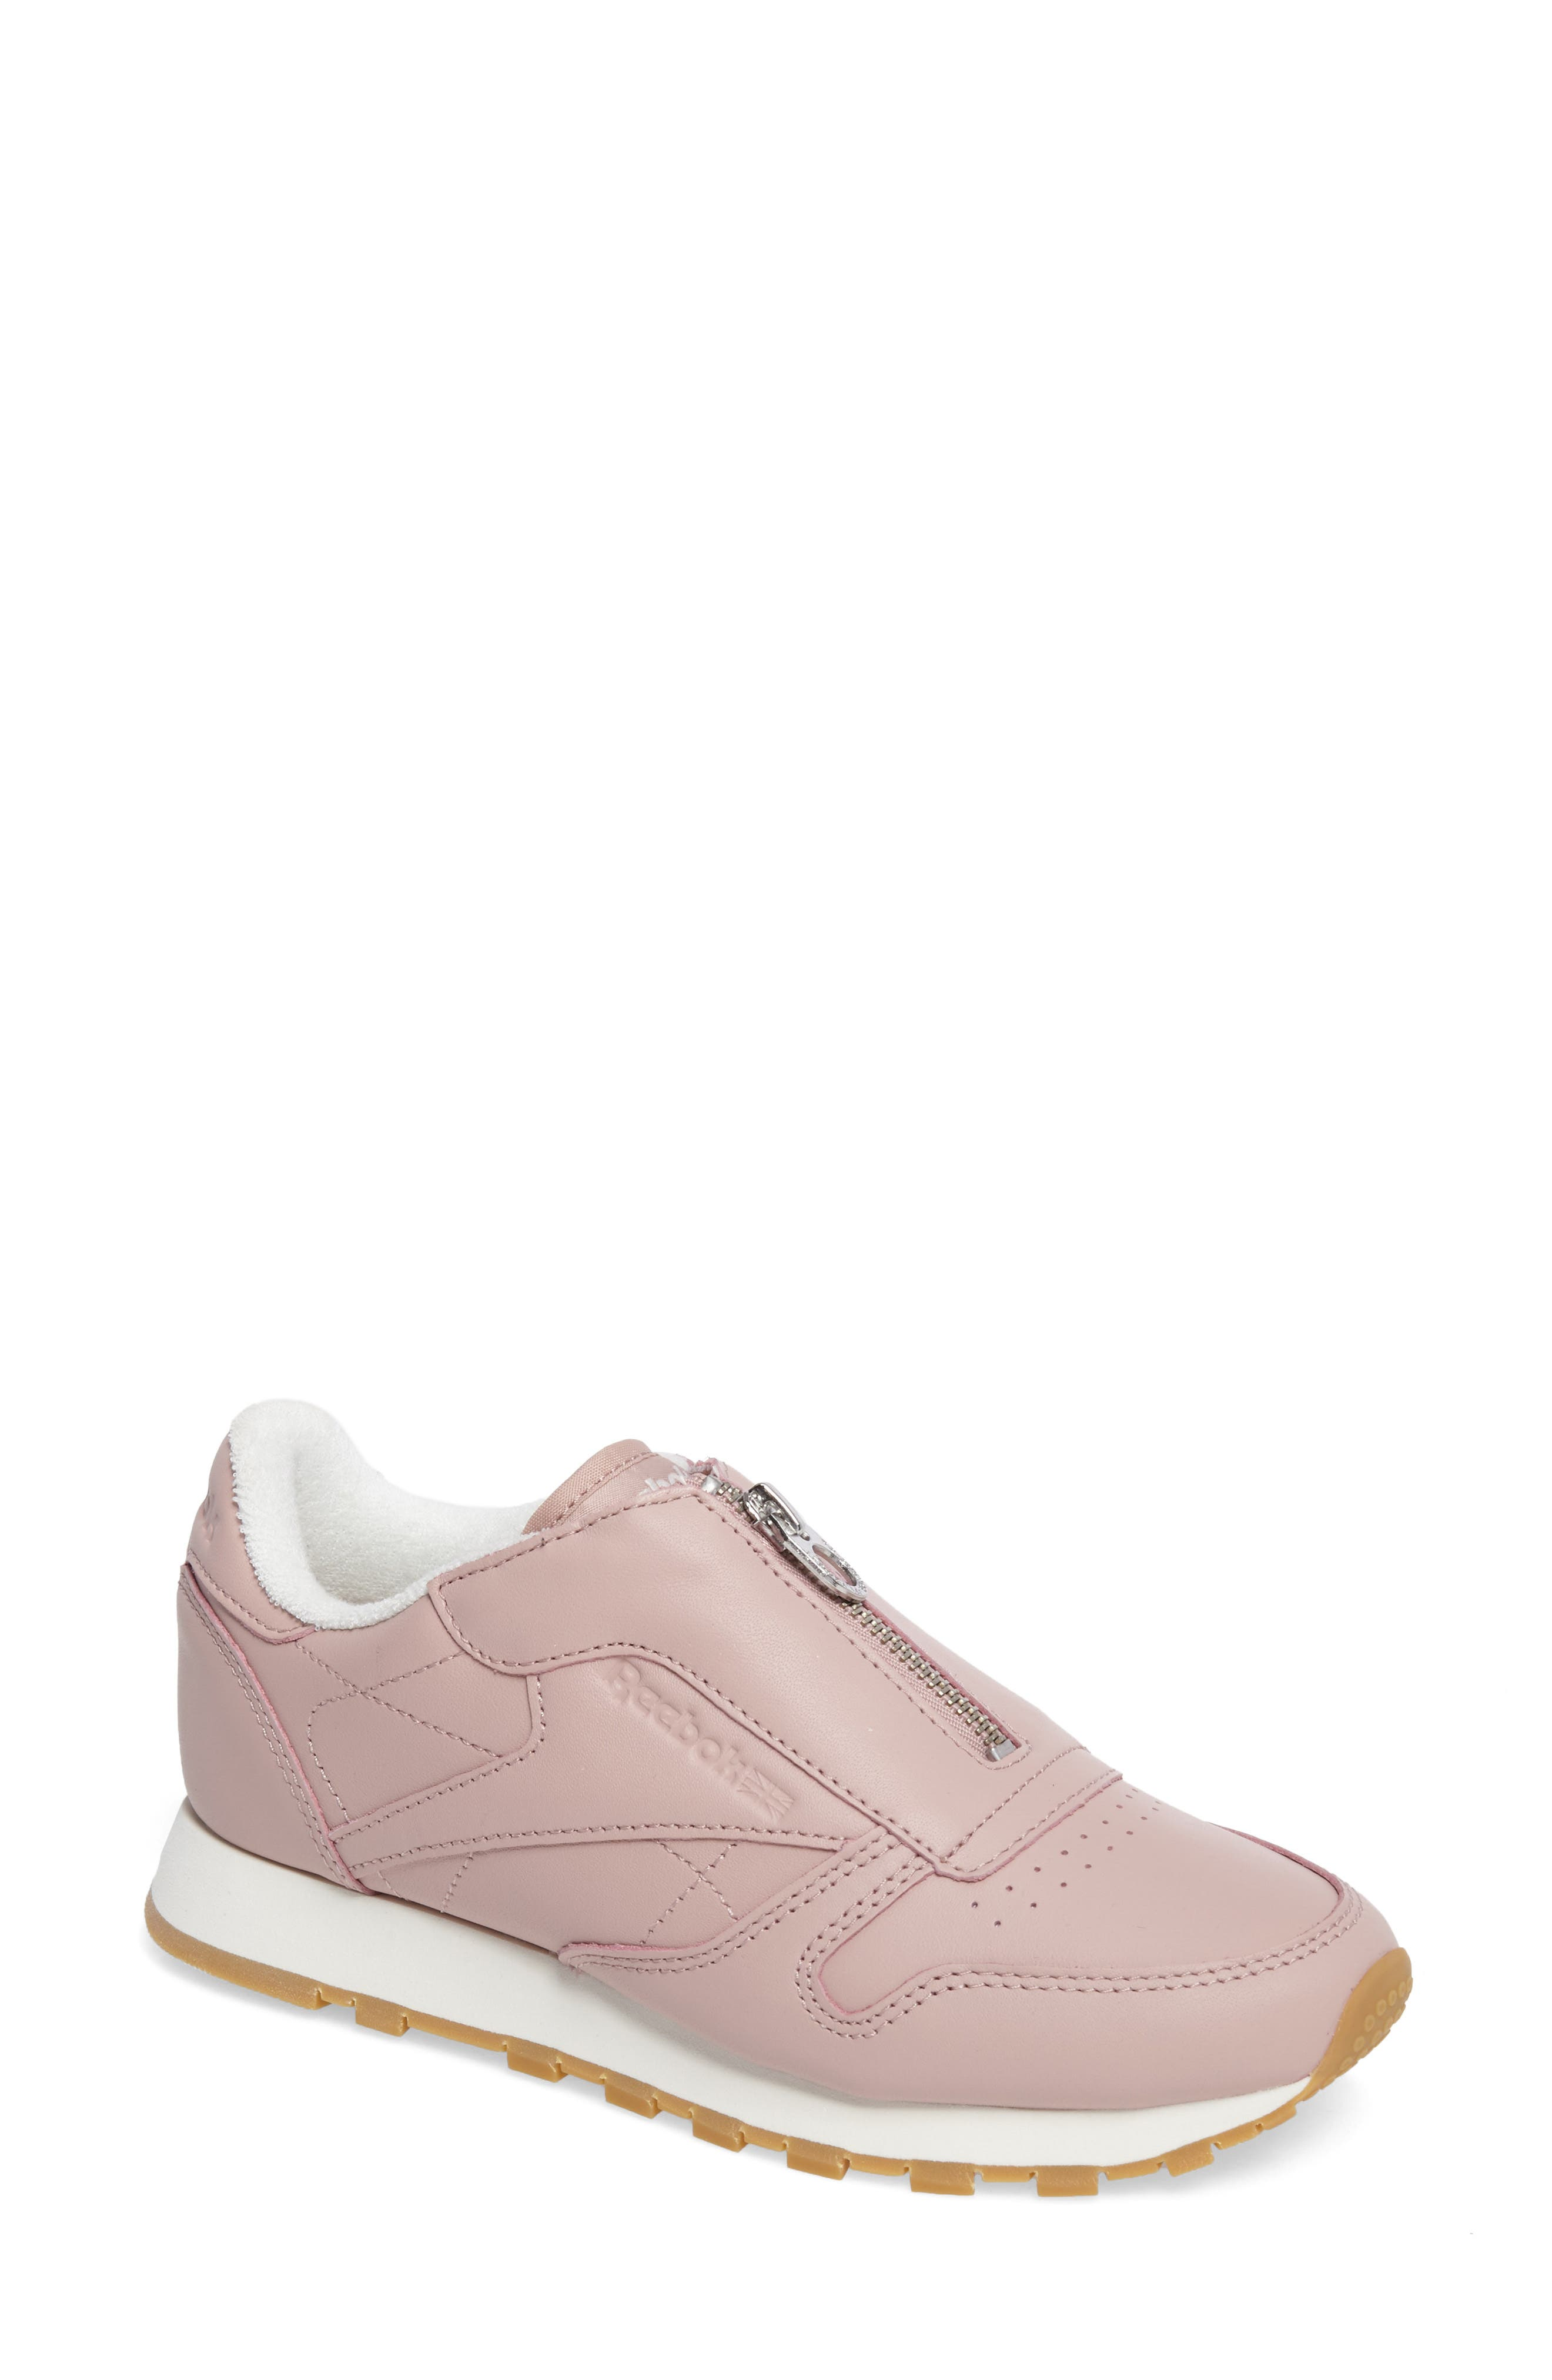 Classic Zip Sneaker,                             Main thumbnail 1, color,                             Shell Pink/ Chalk/ Silver